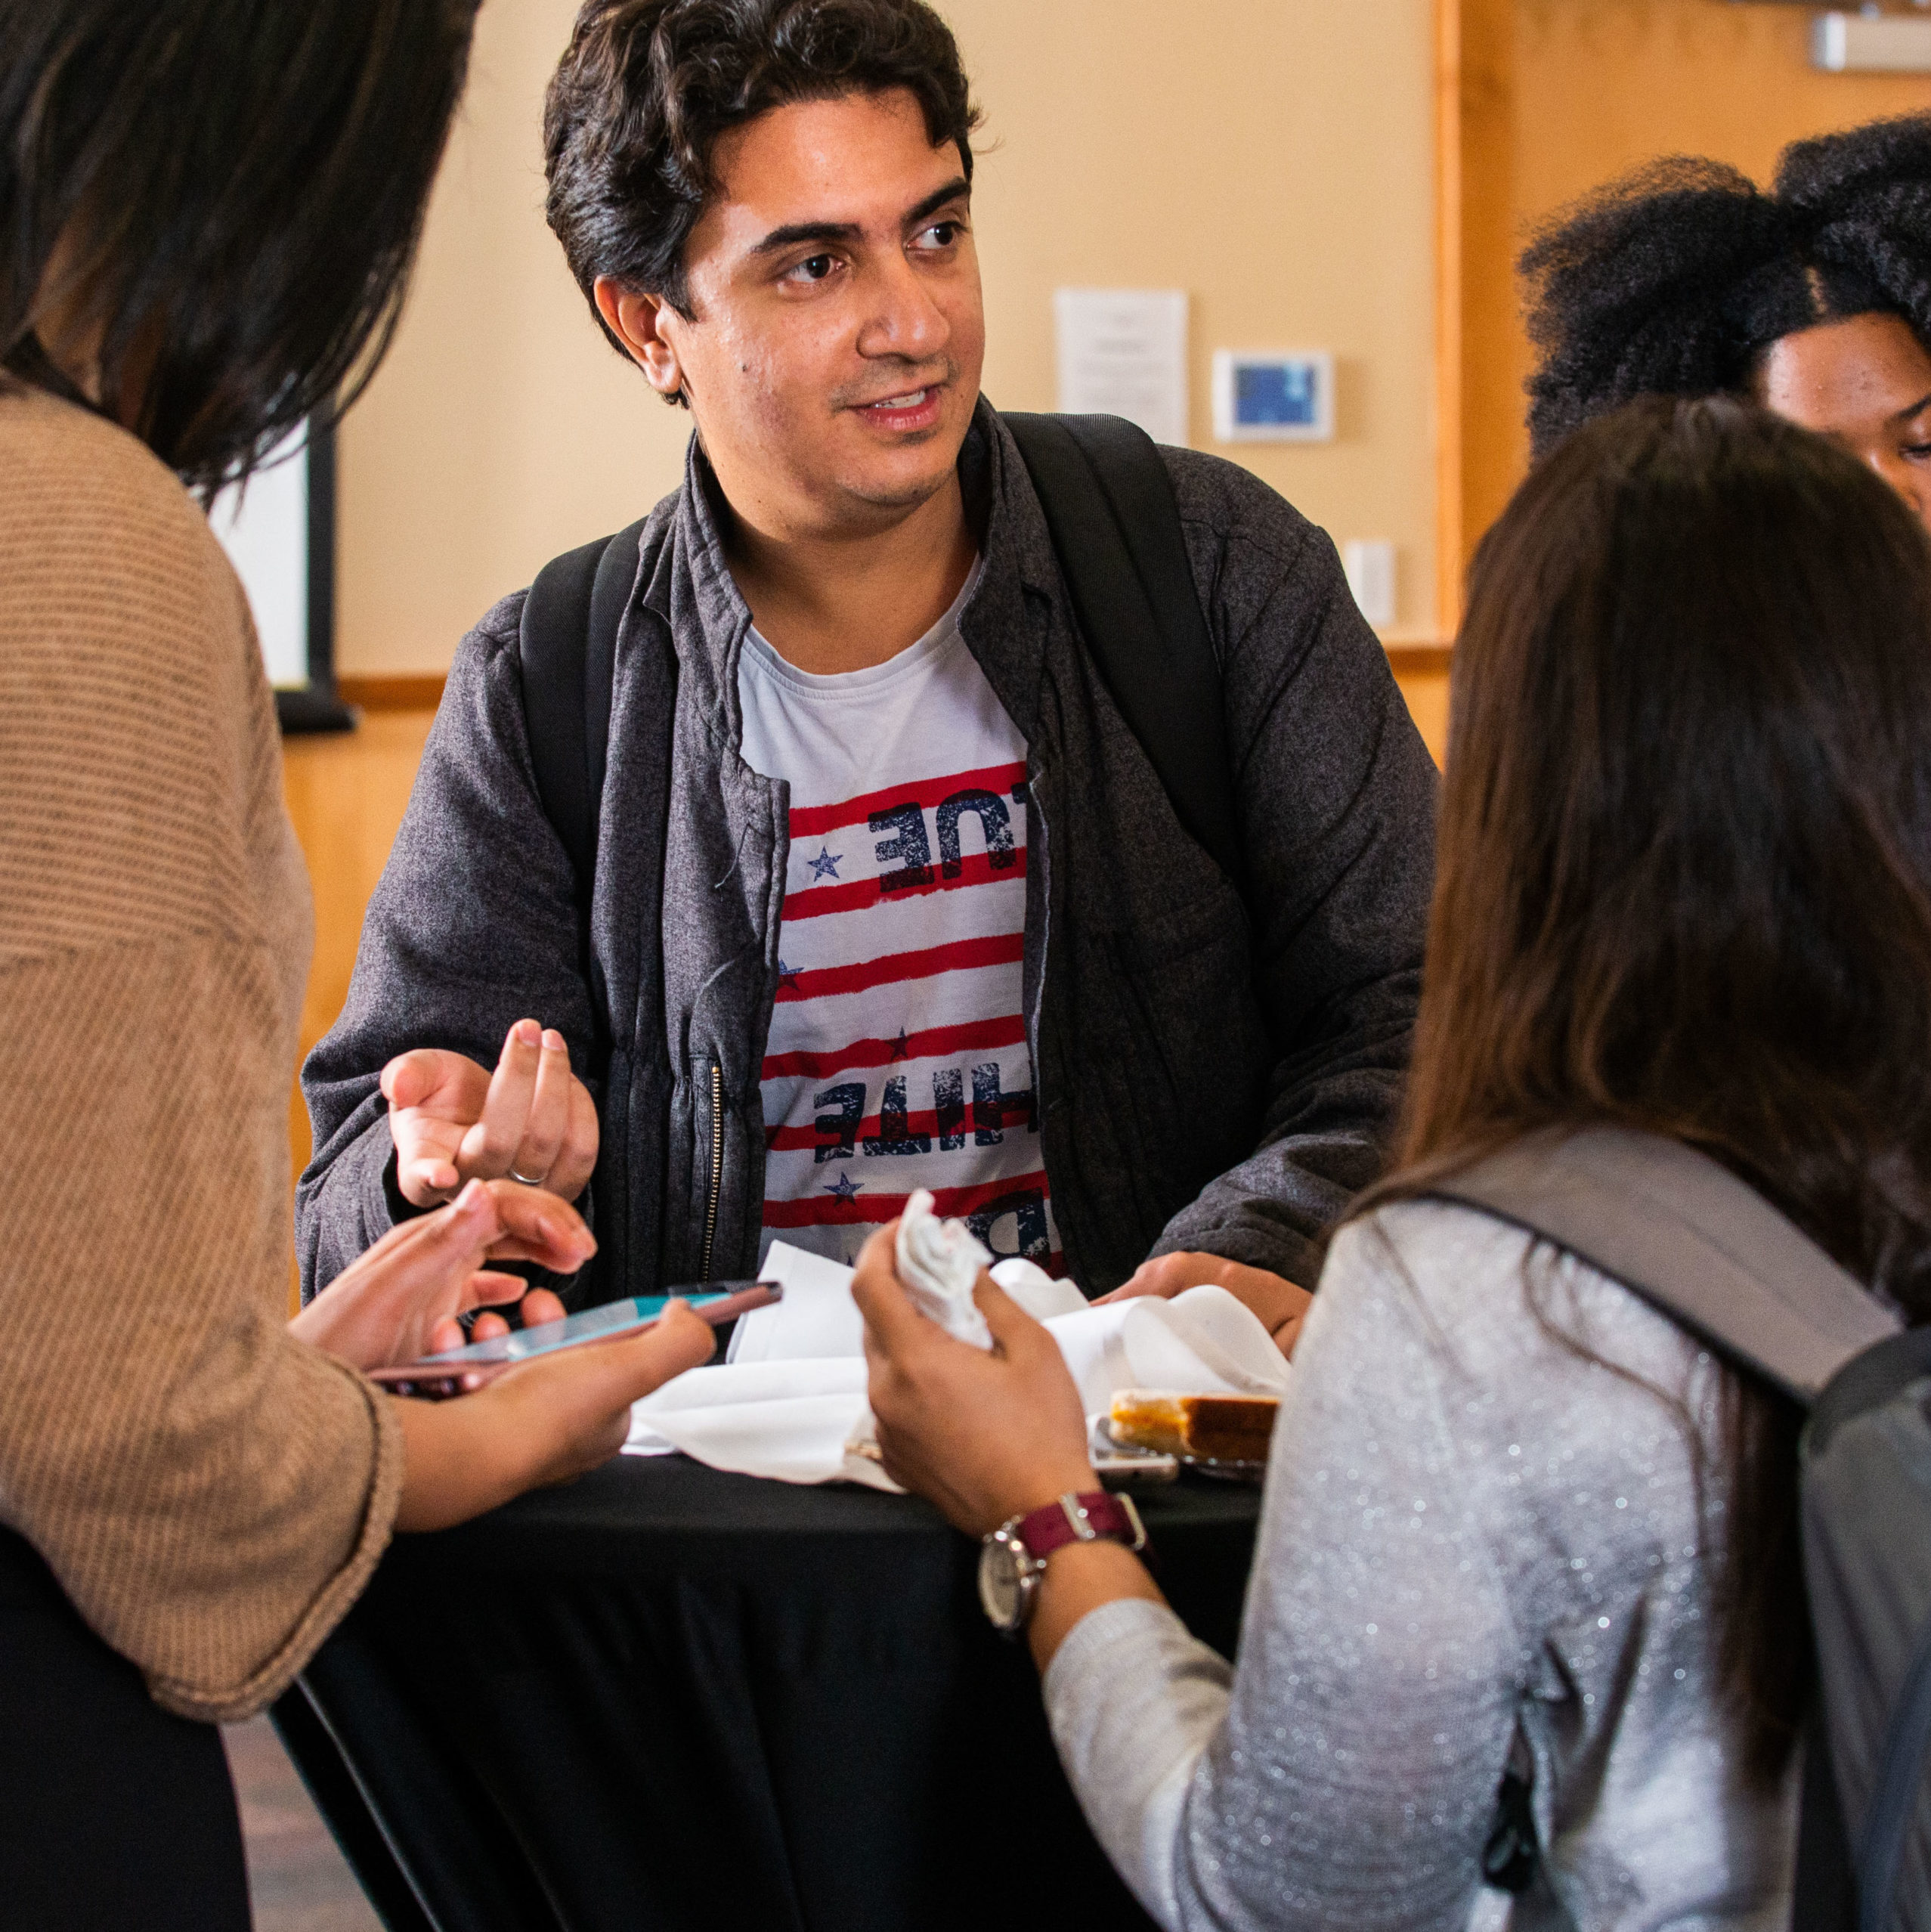 A group of student talking at a table.